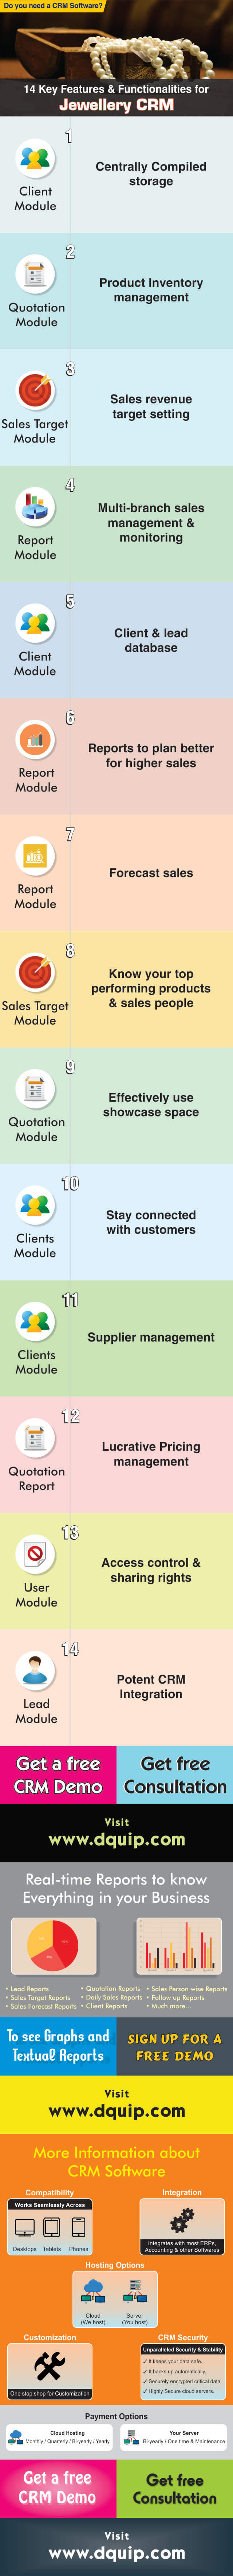 Infographic on Features and Functionalities of Jewellery CRM